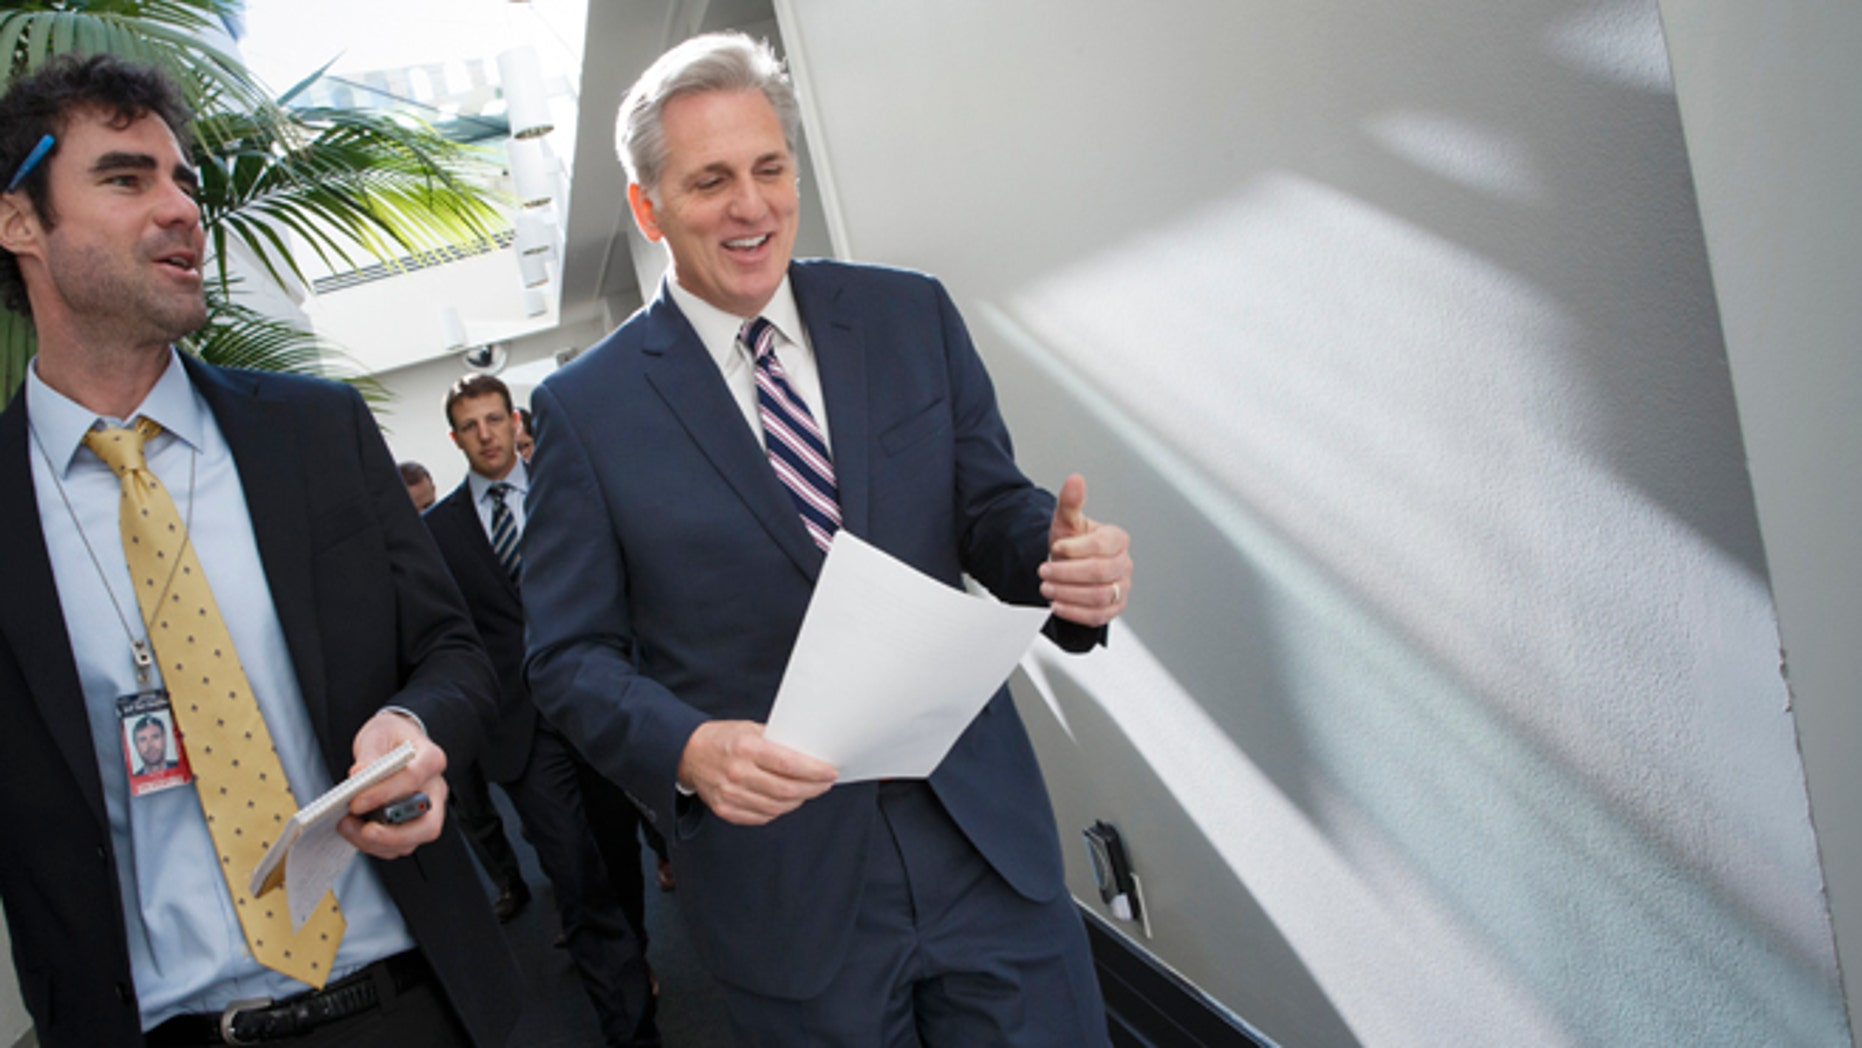 House Majority Leader Kevin McCarthy of Calif., center, walks with a reporters as on Capitol Hill in Washington, Friday, Jan. 9, 2015, as House Republicans leave a closed-door meeting on thwarting President Barack Obama's executive actions on immigration by blocking the funding for the Department of Homeland Security, Obama's directives in November gave temporary relief from deportation to about 4 million immigrants in the country illegally, along with permits allowing them to work legally in the U.S. His move infuriated Republicans after their midterm election victories, and they vowed to retaliate once they assumed full control of Congress this week. (AP Photo/J. Scott Applewhite)